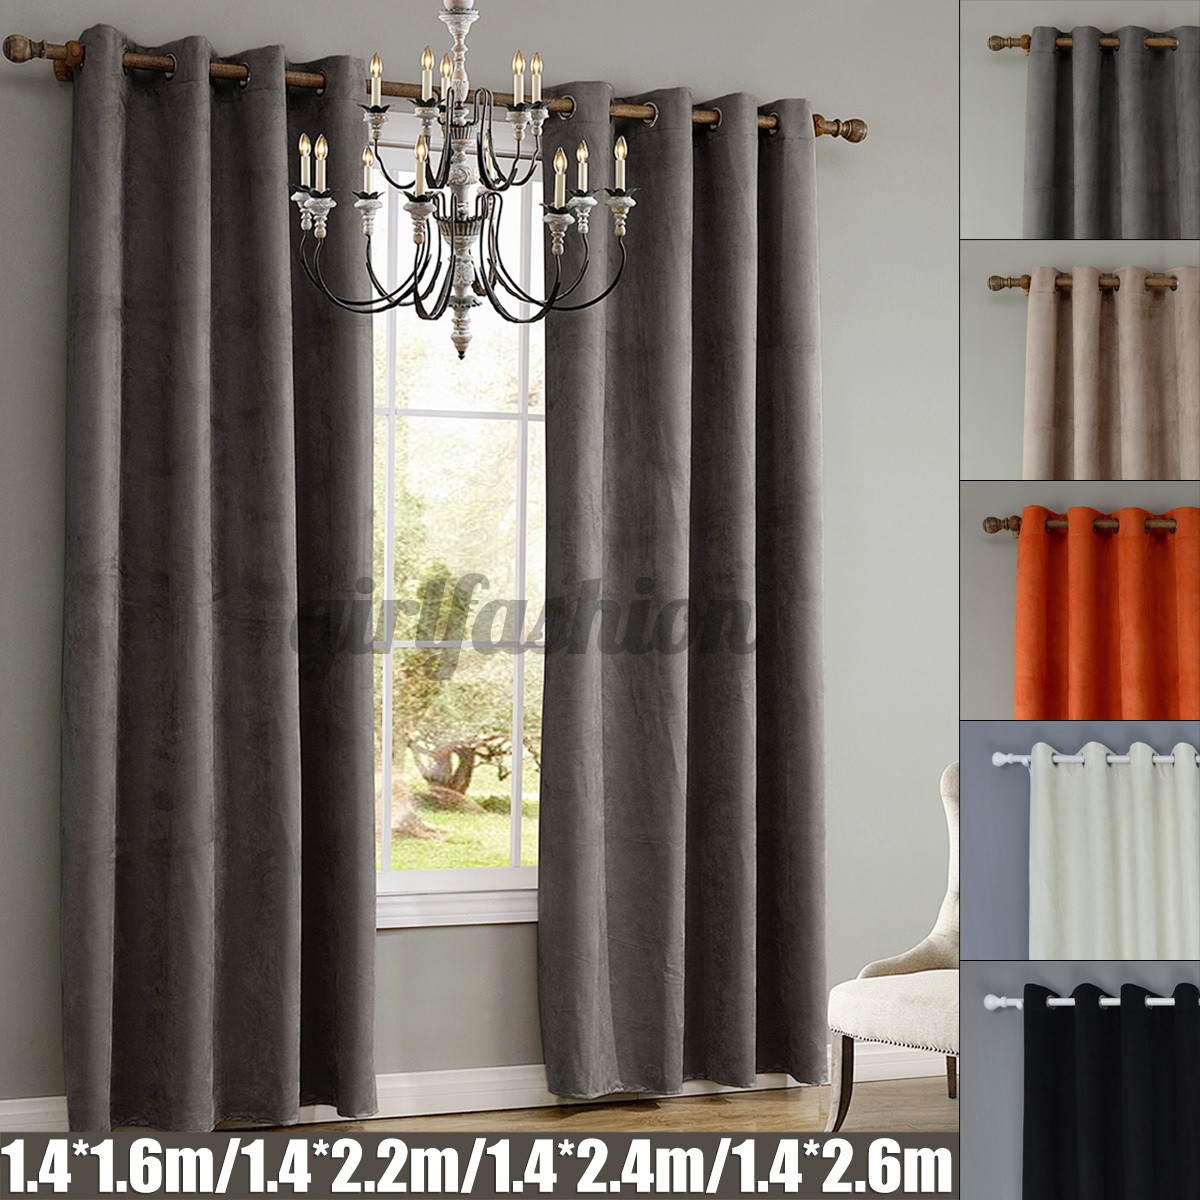 5 Colors Solid Colors Blackout Curtains For Living Room Bedroom Modern Window Curtains Thermal Curtain For Window Home Decor Grommet Drapes Bedroom Decorations Shopee Philippines